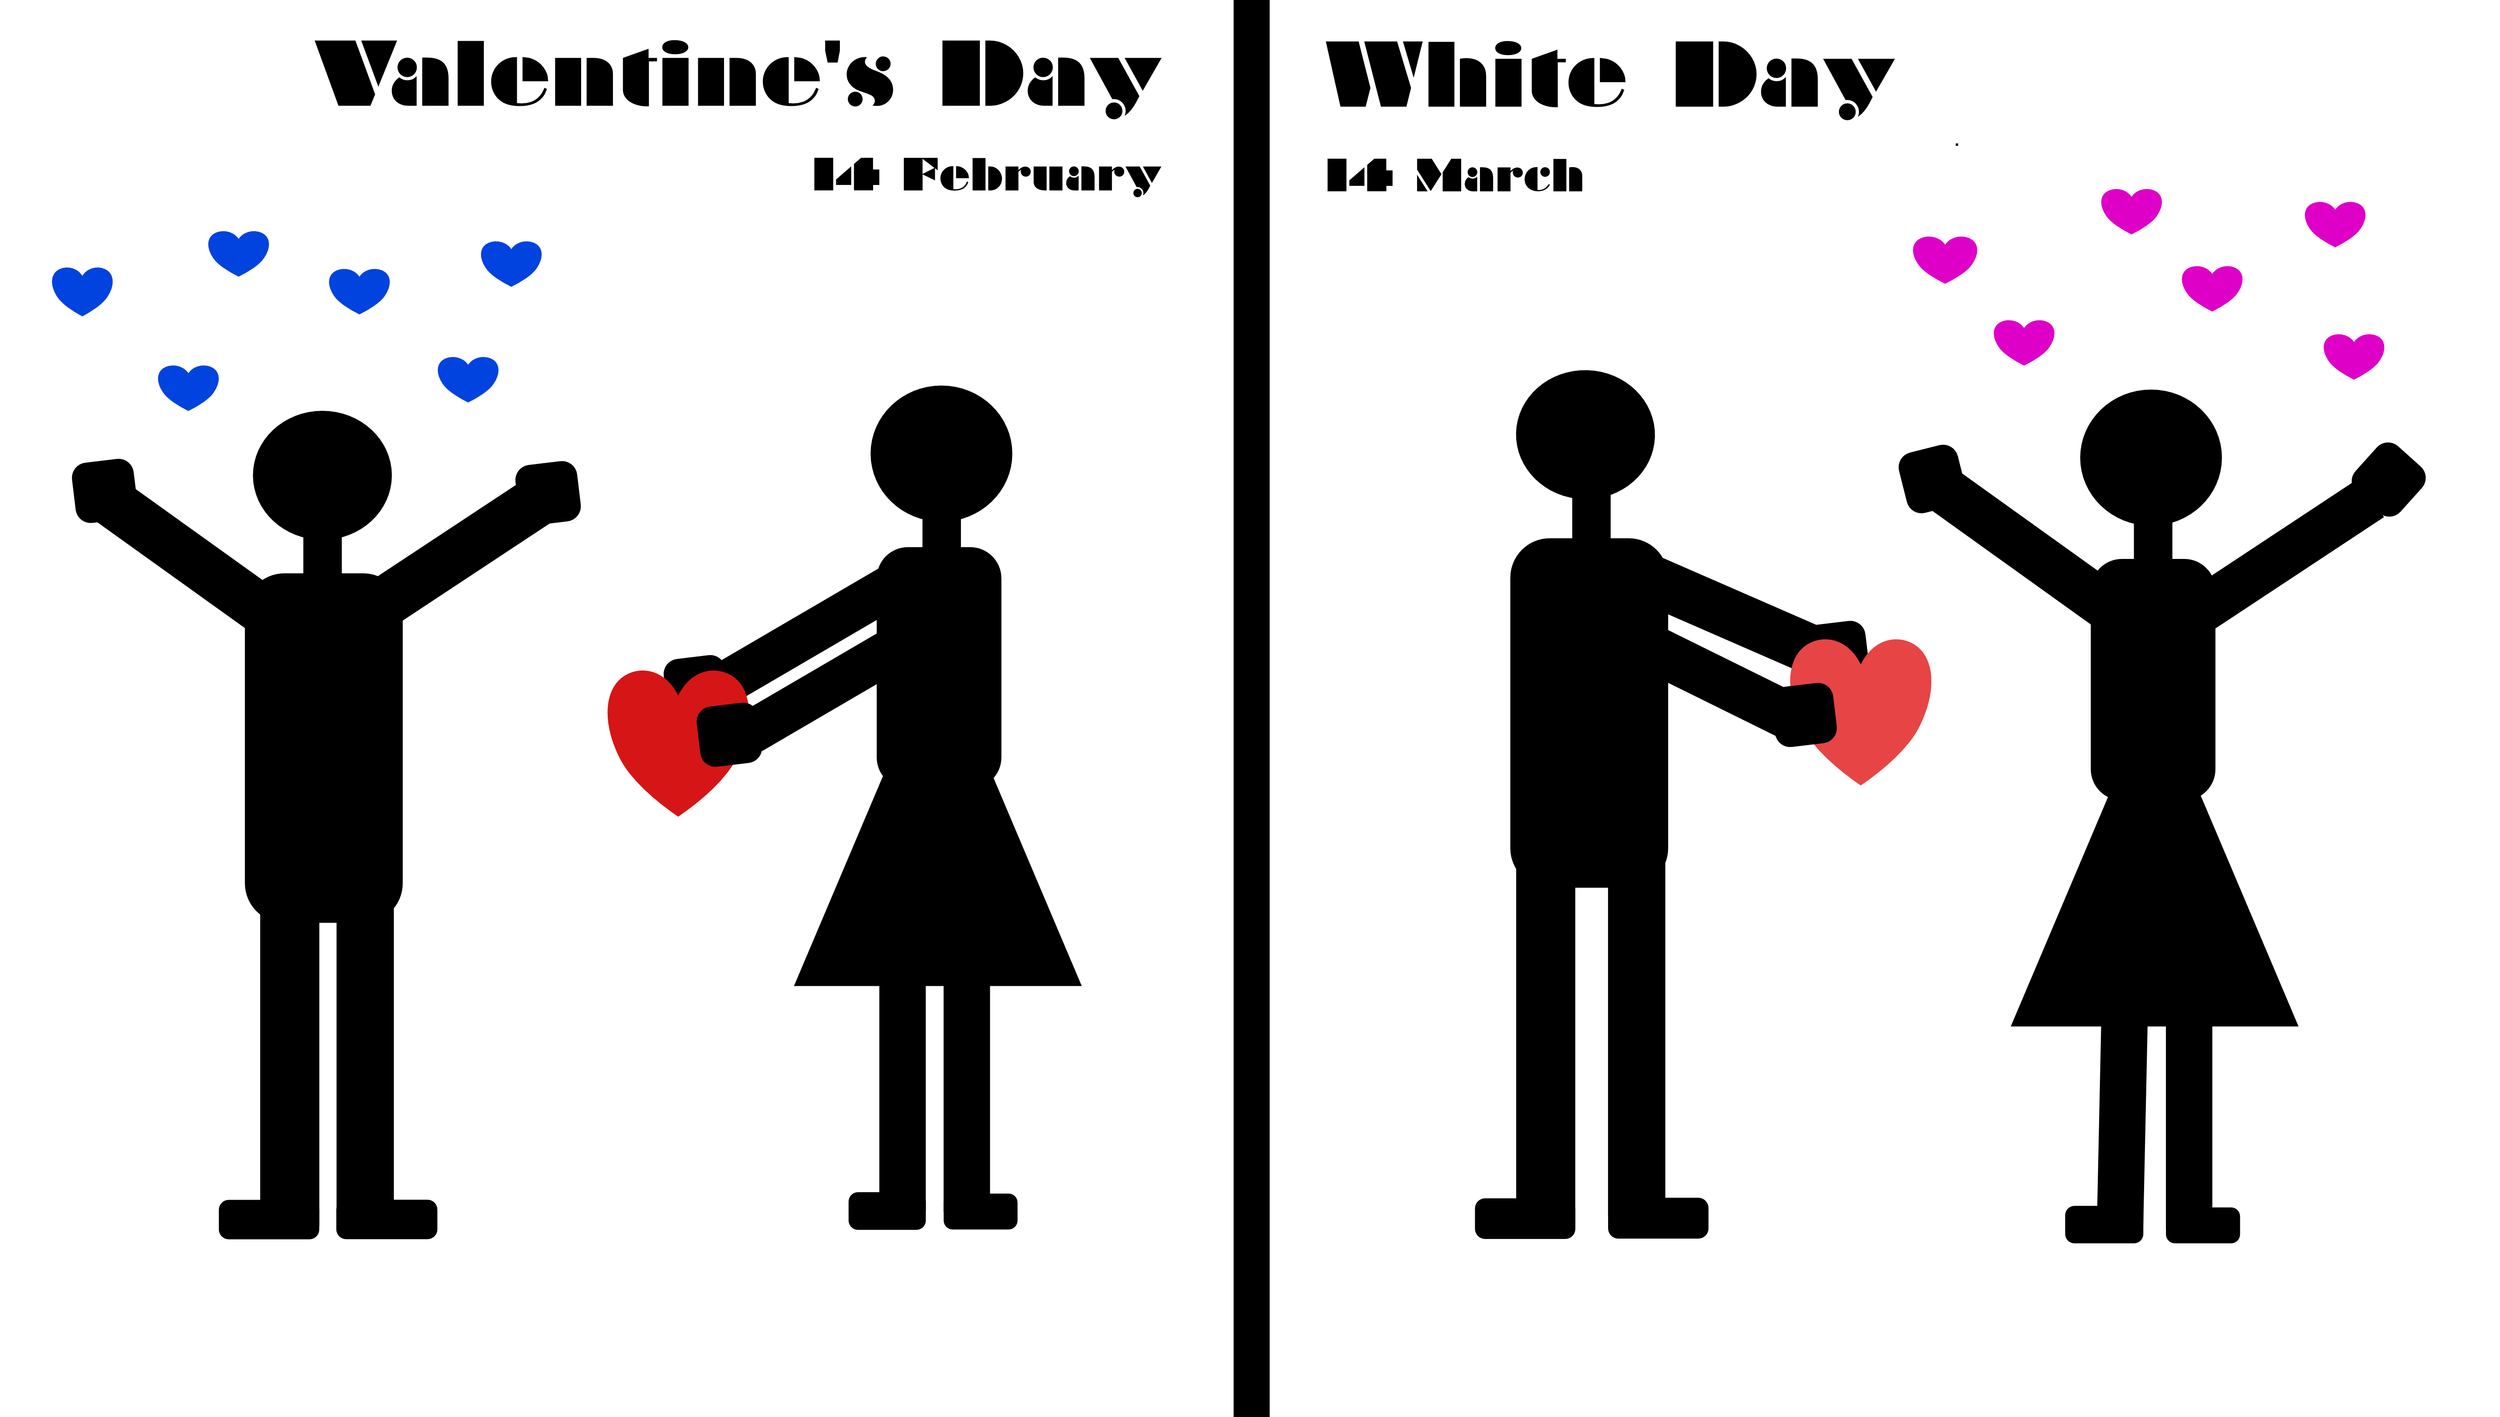 Valentine's Day and White Day: yes, things are different